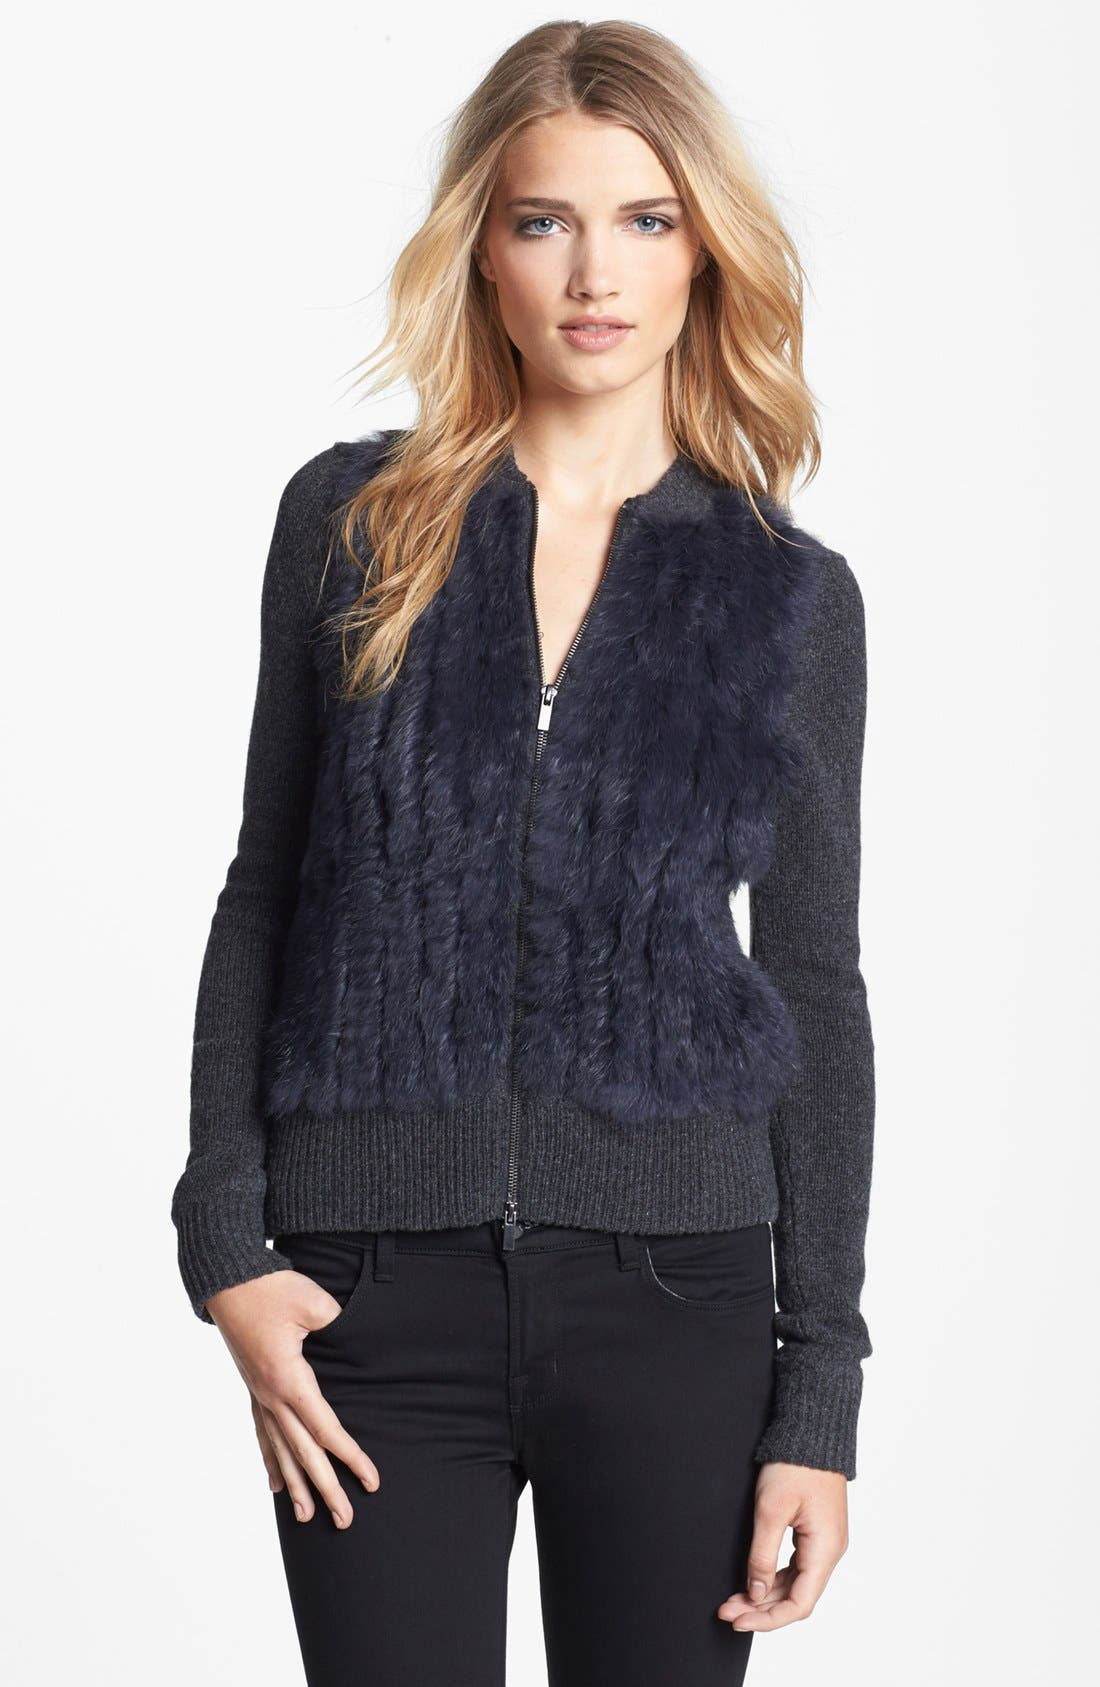 Alternate Image 1 Selected - Diane von Furstenberg 'Cortina' Genuine Rabbit Fur Front Cardigan